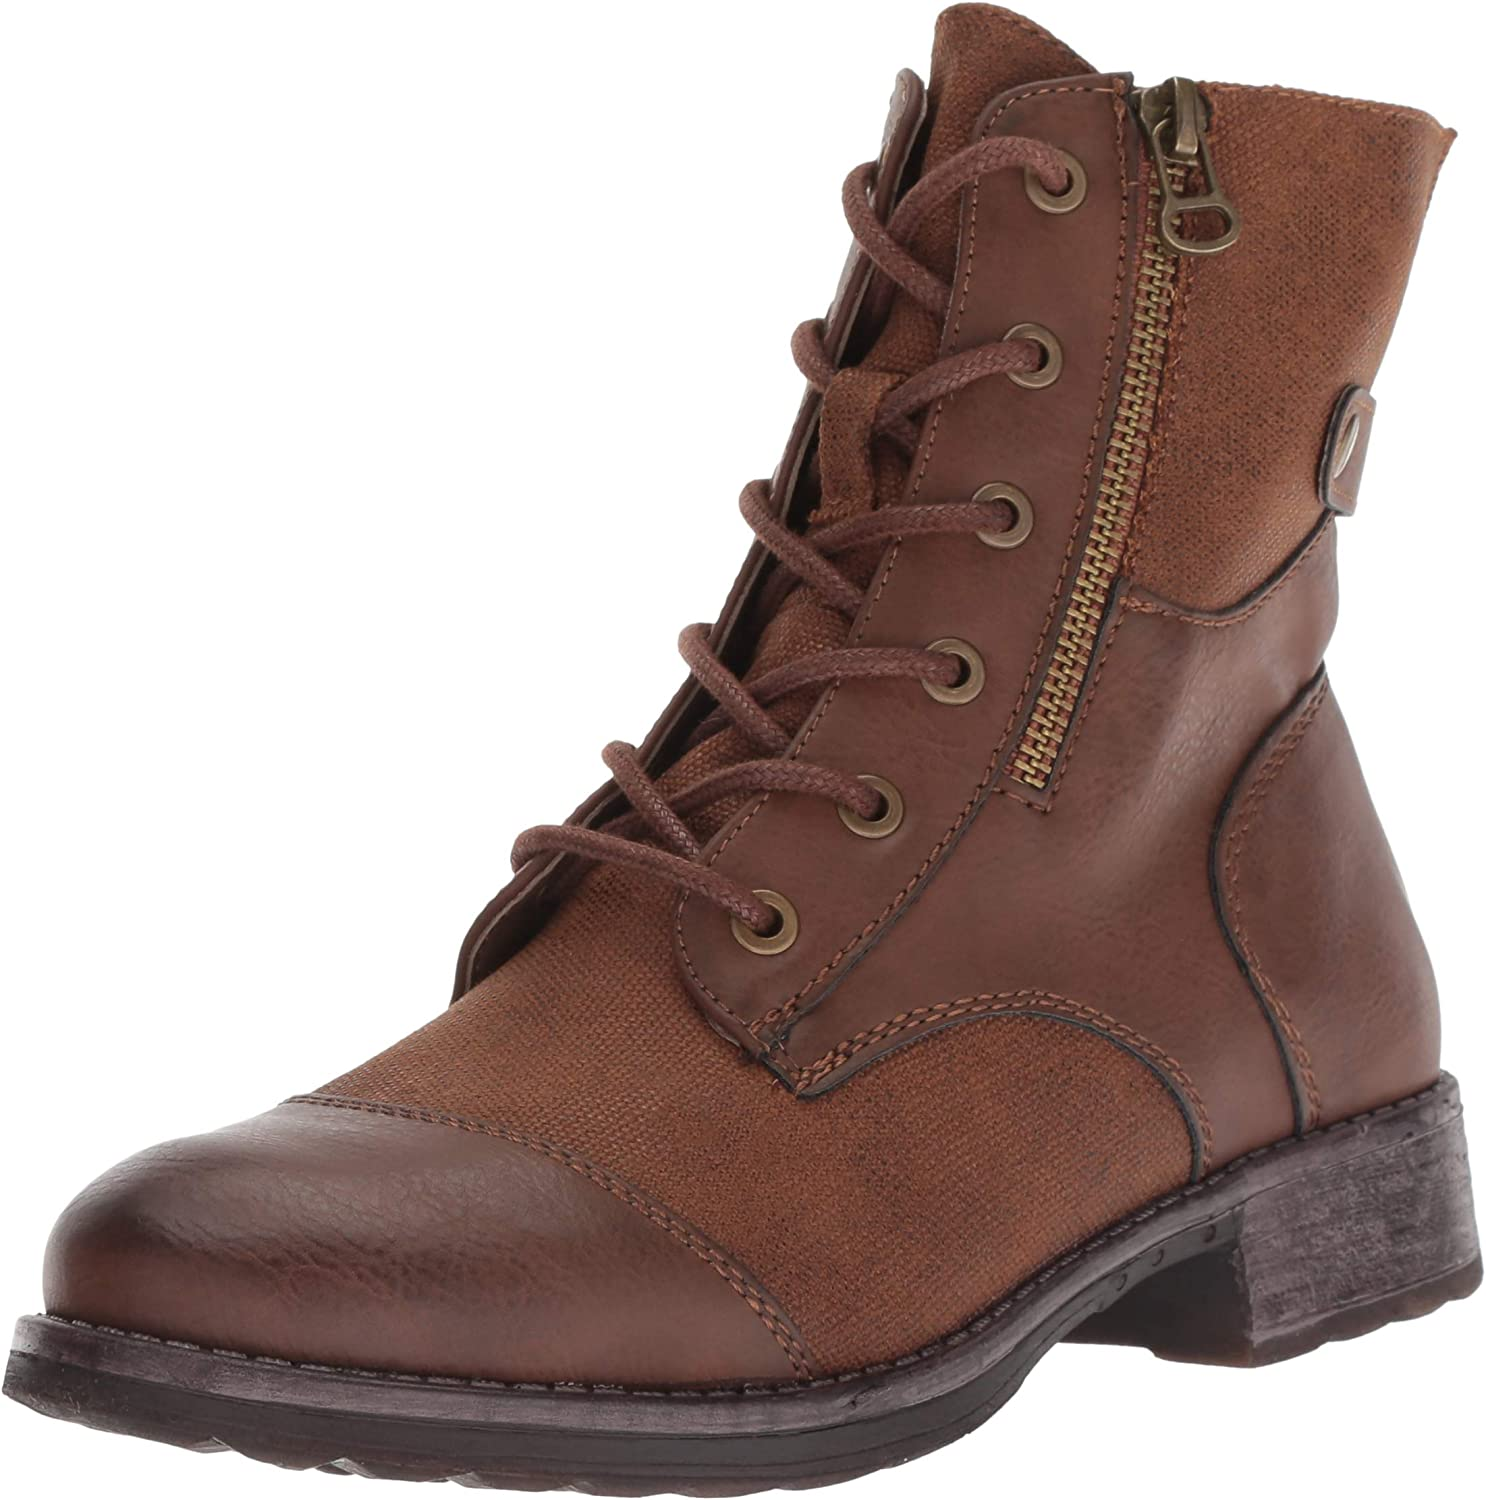 Dirty Laundry Women's Tilley Combat Boot